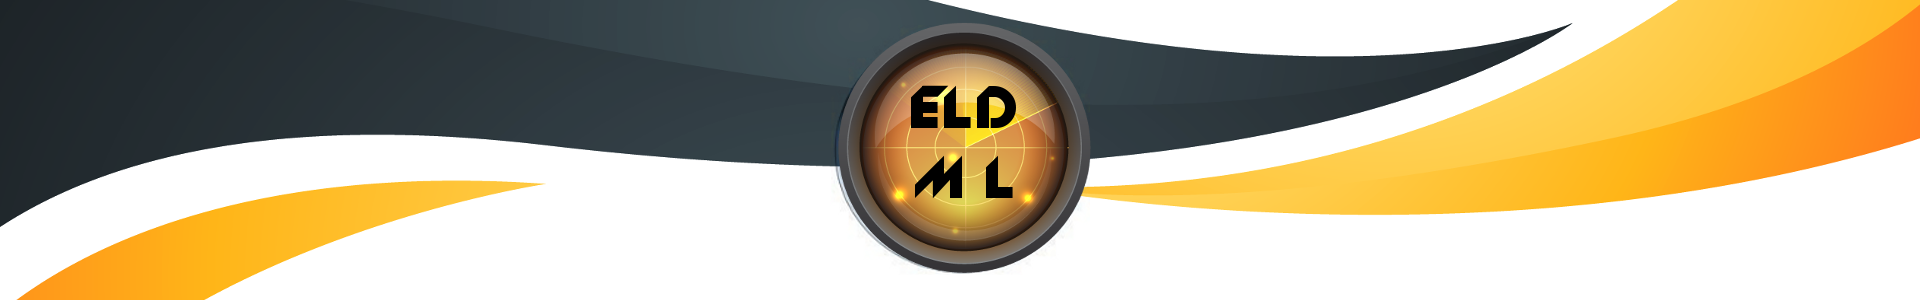 Eld Engineering